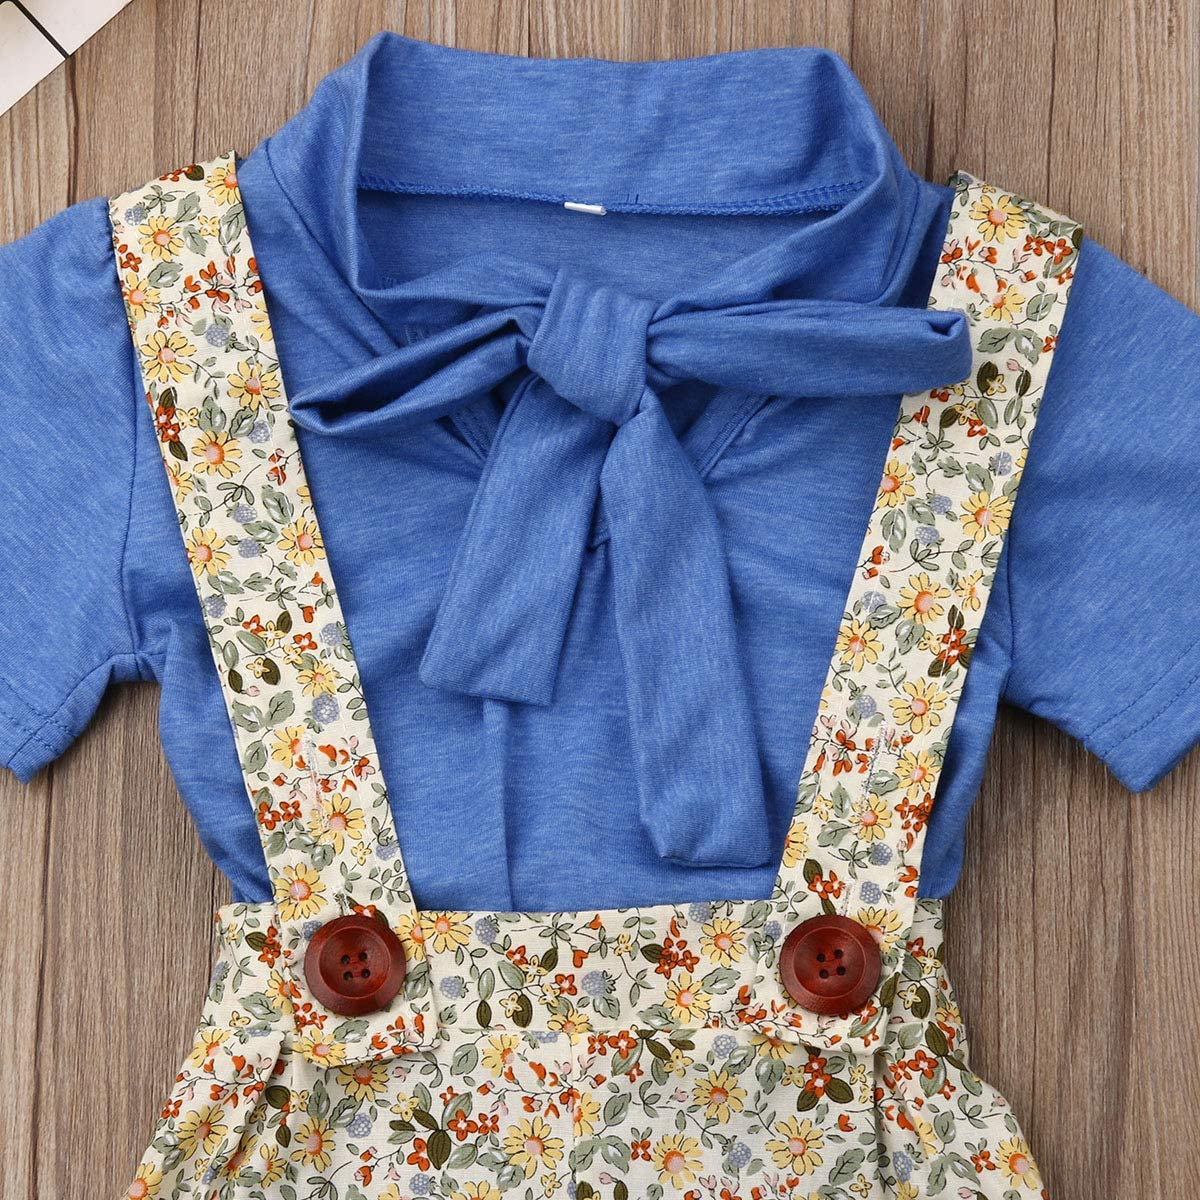 Baby Girls Suspenders Shorts Set Short Sleeve Bowknot Shirts Tops Flowers Short Overalls Summer Outfits